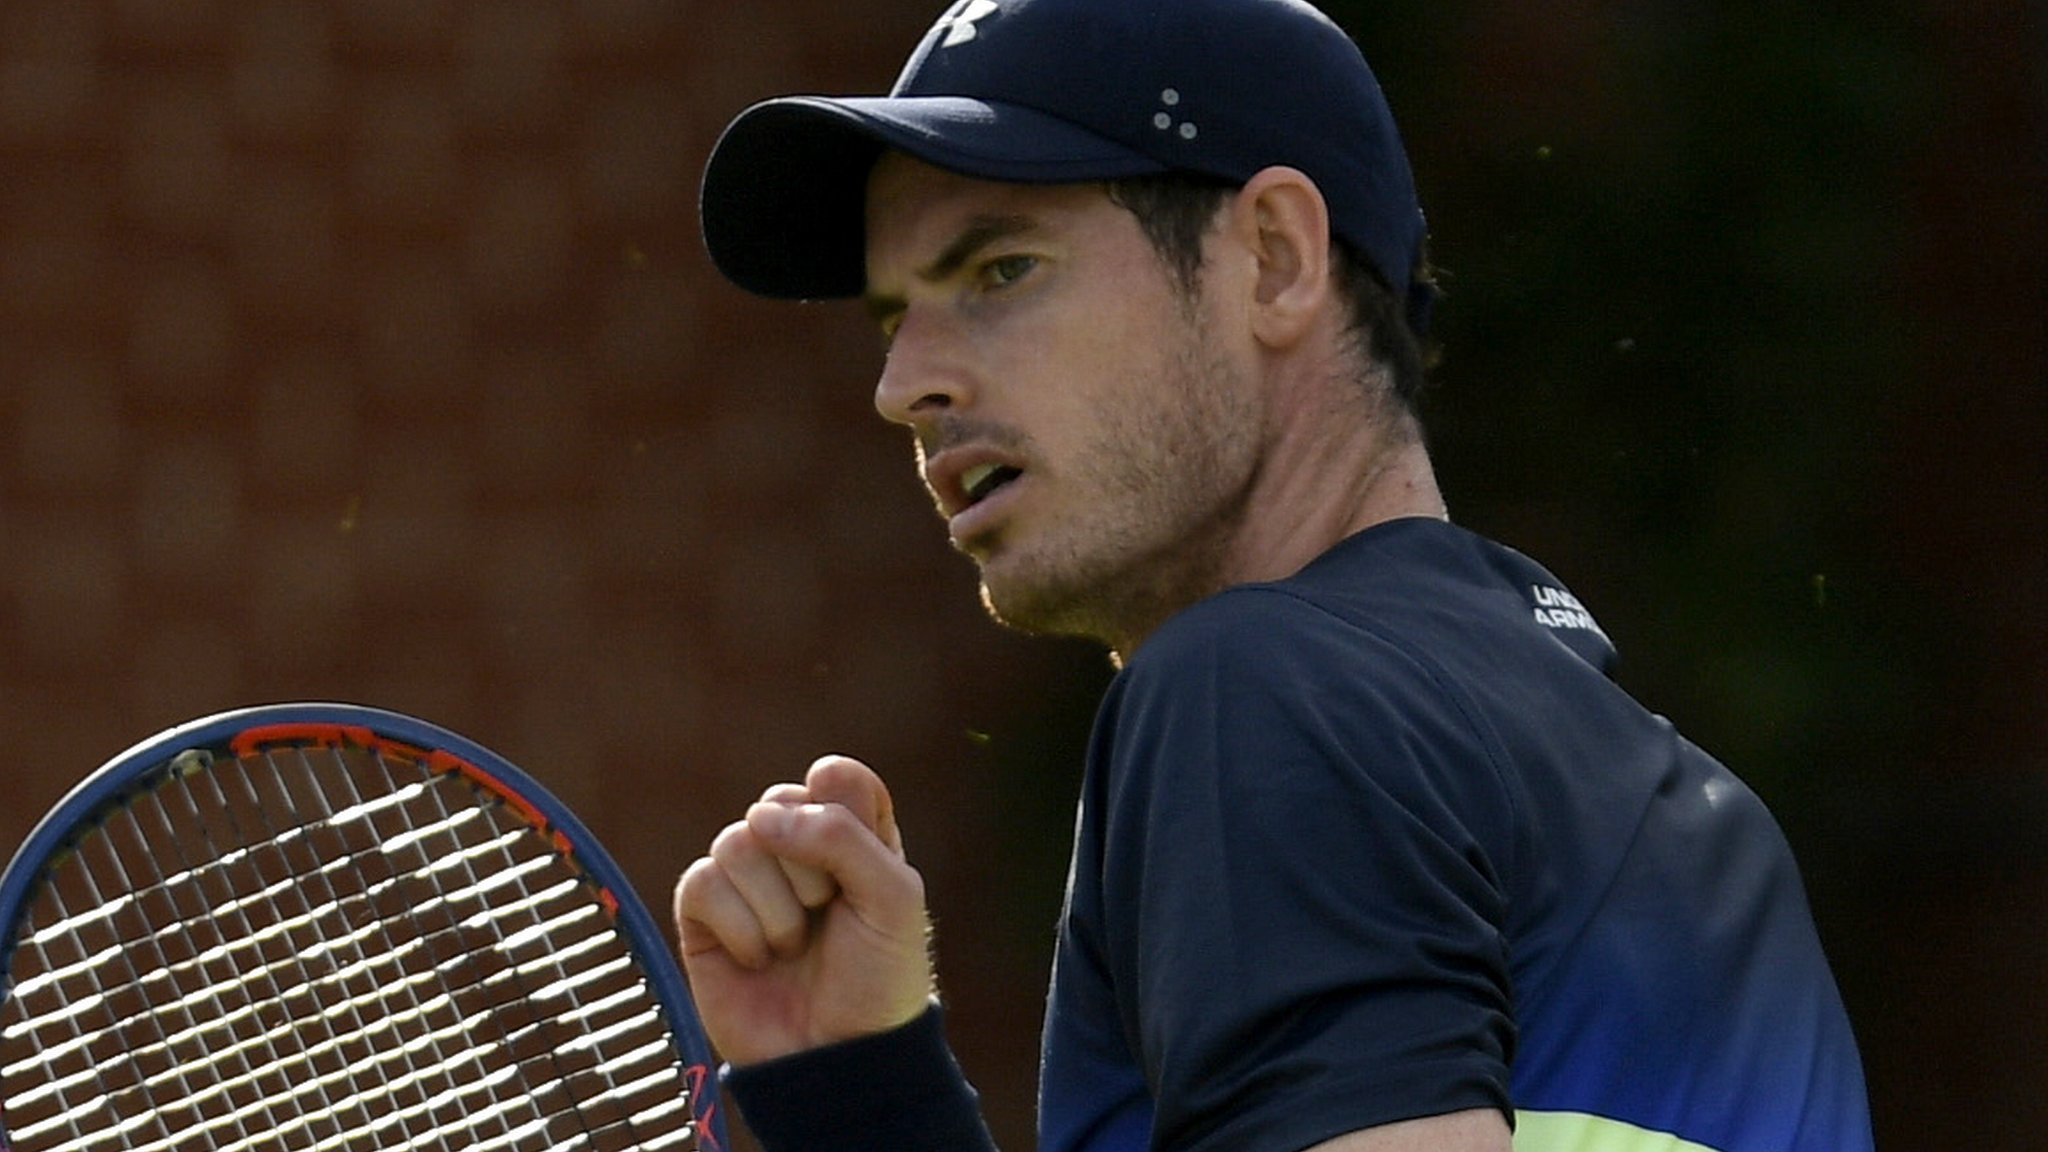 Eastbourne: Andy Murray takes wildcard at Nature Valley International